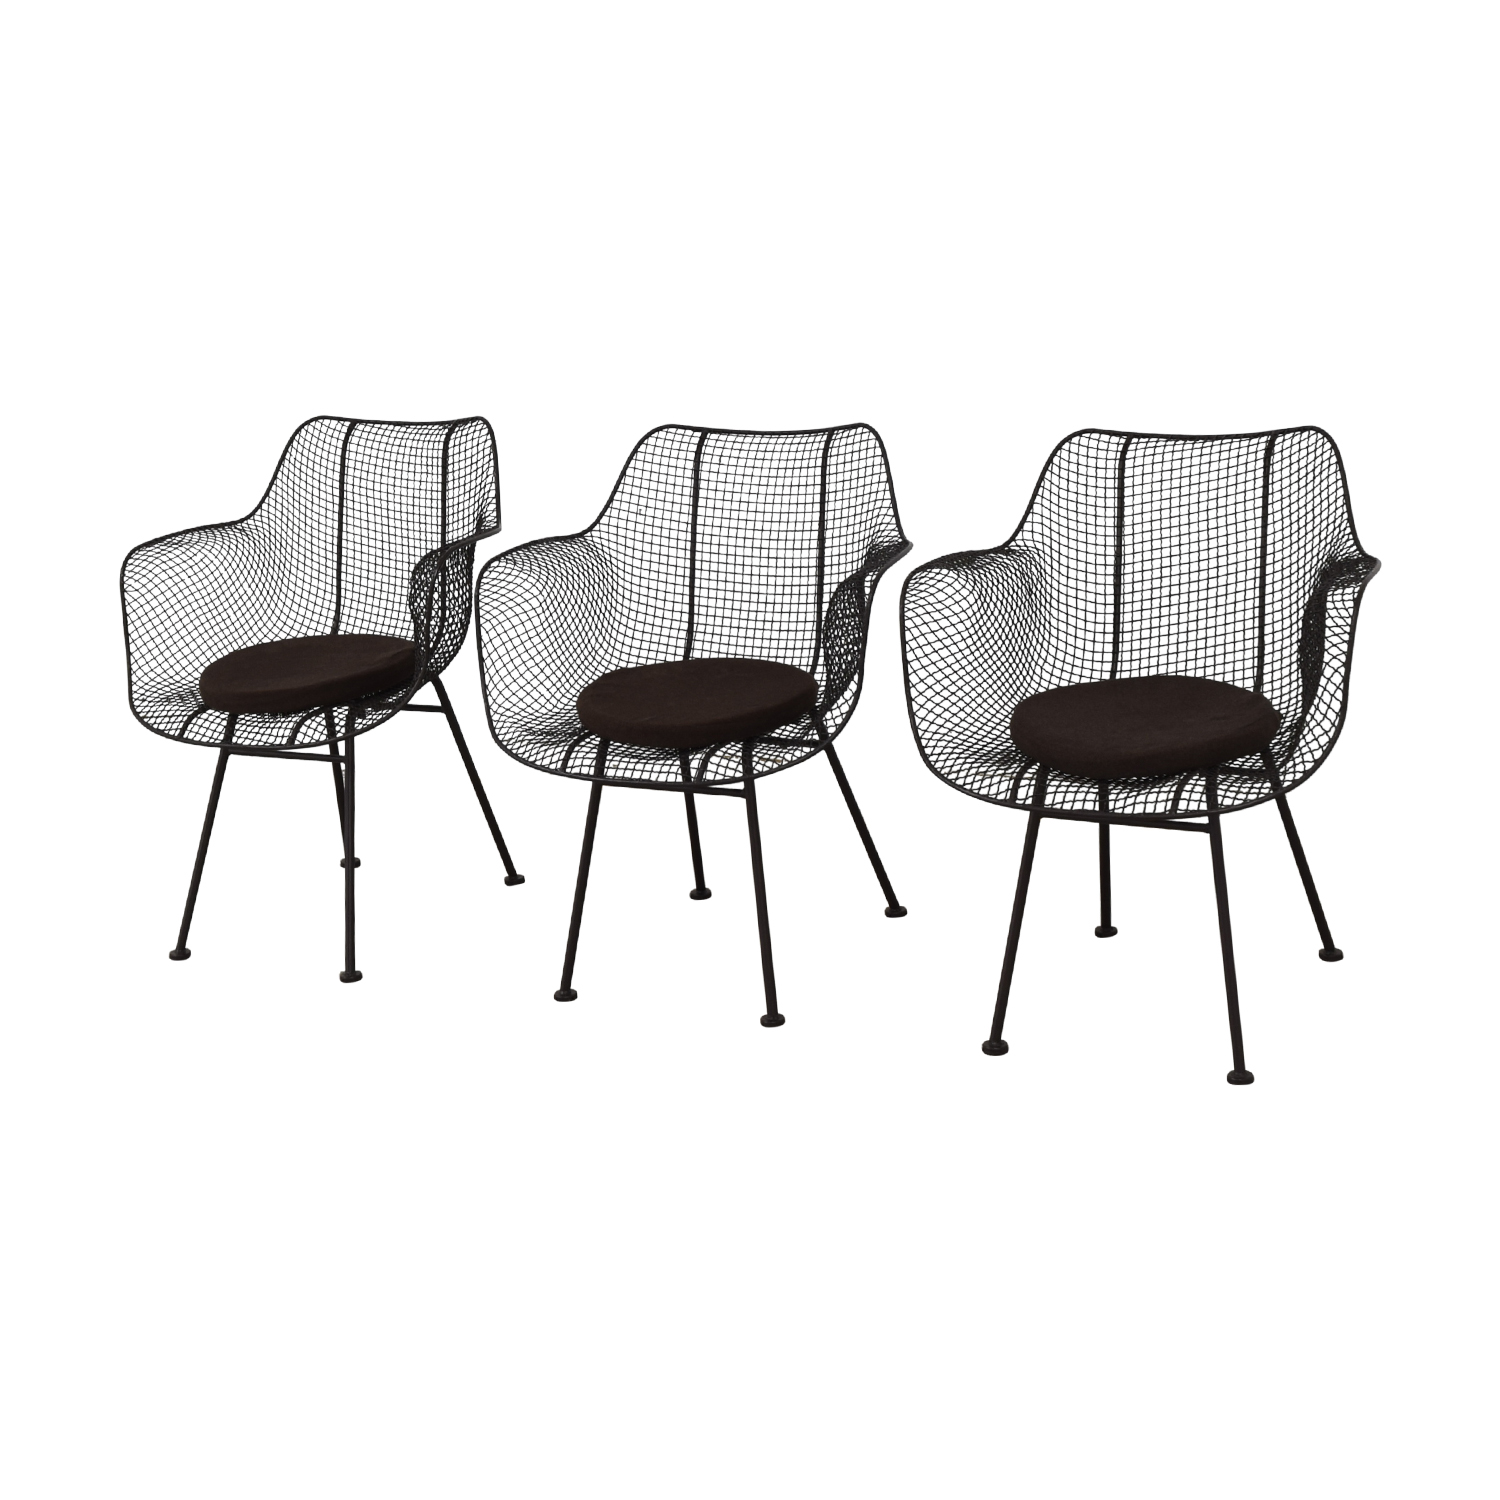 Restoration Hardware Restoration Hardware Metal Tub Dining Chairs coupon